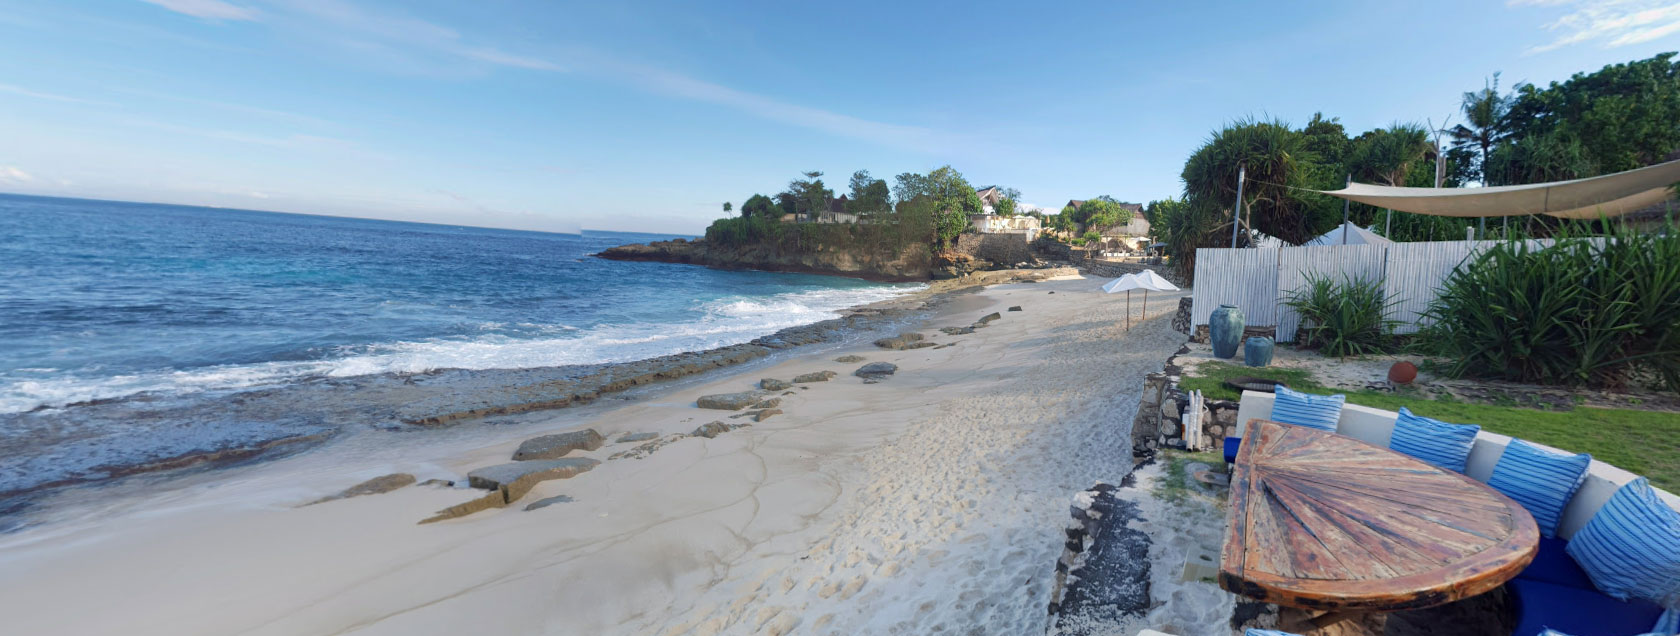 Sandy Bay - Lembongan Beaches